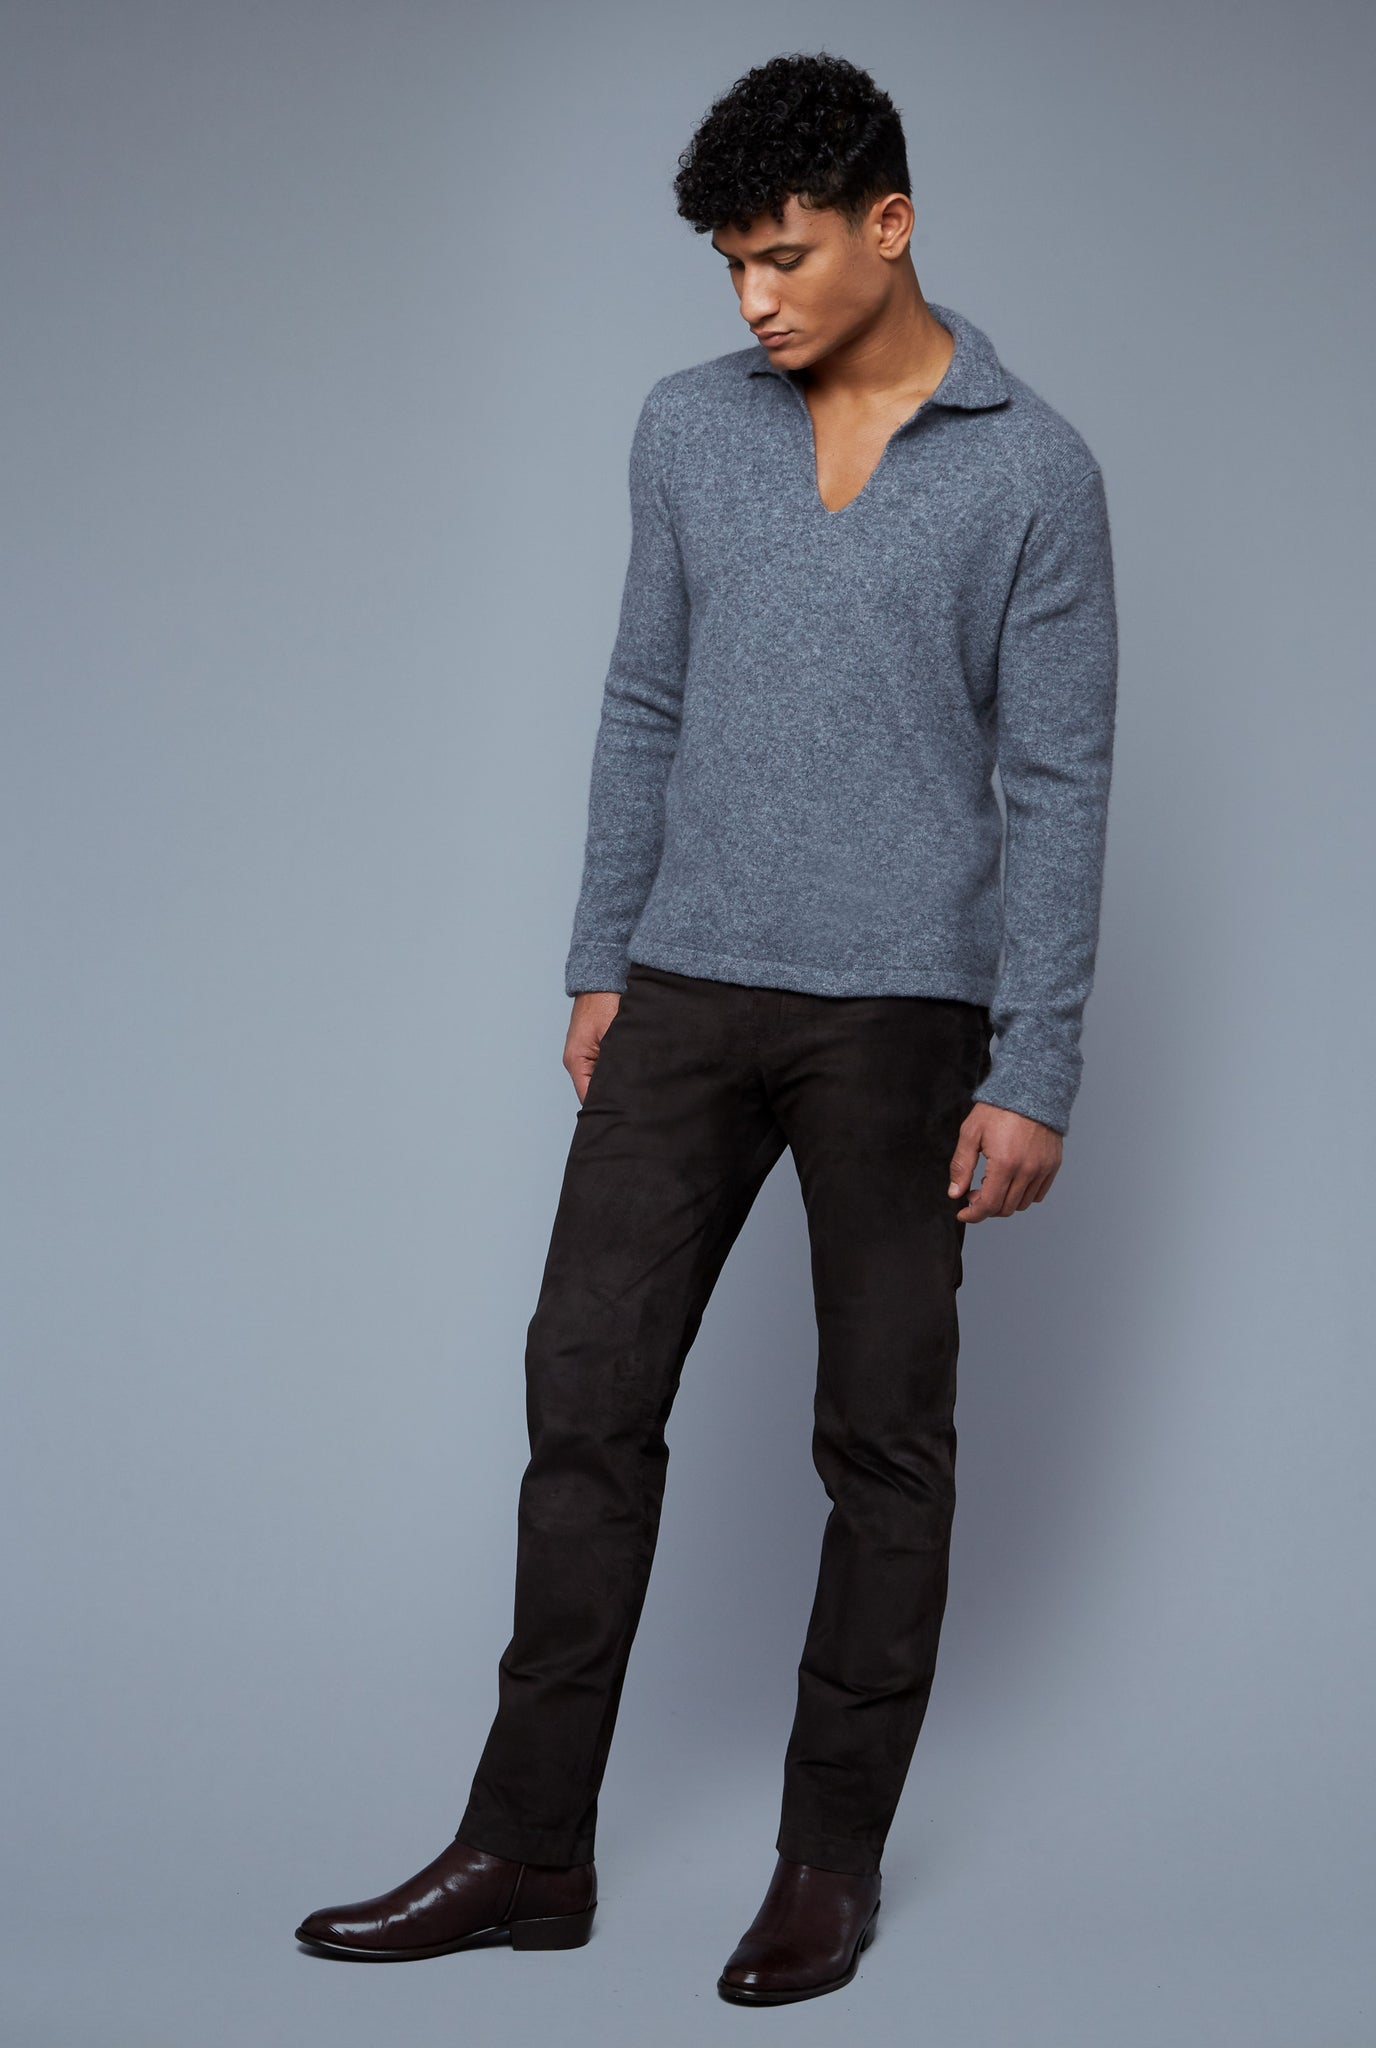 Boucle Polo | Grey Cashmere